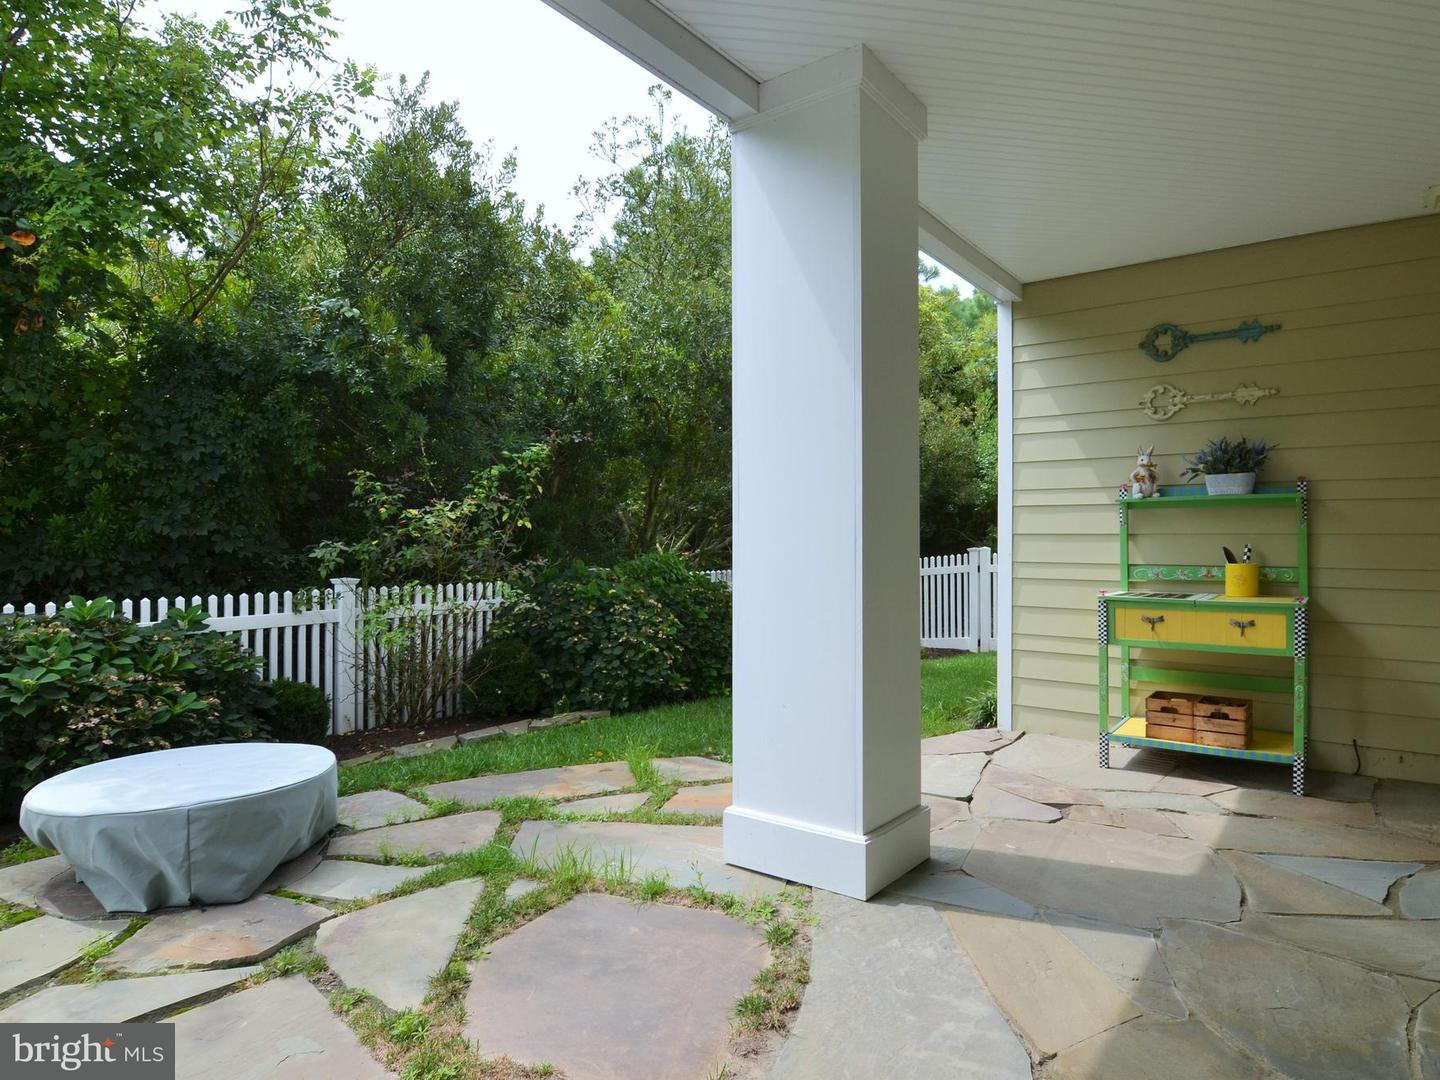 1002293530-300500805704-2018-09-25-15-08-24 31 Hall Ave | Rehoboth Beach, De Real Estate For Sale | MLS# 1002293530  - Suzanne Macnab